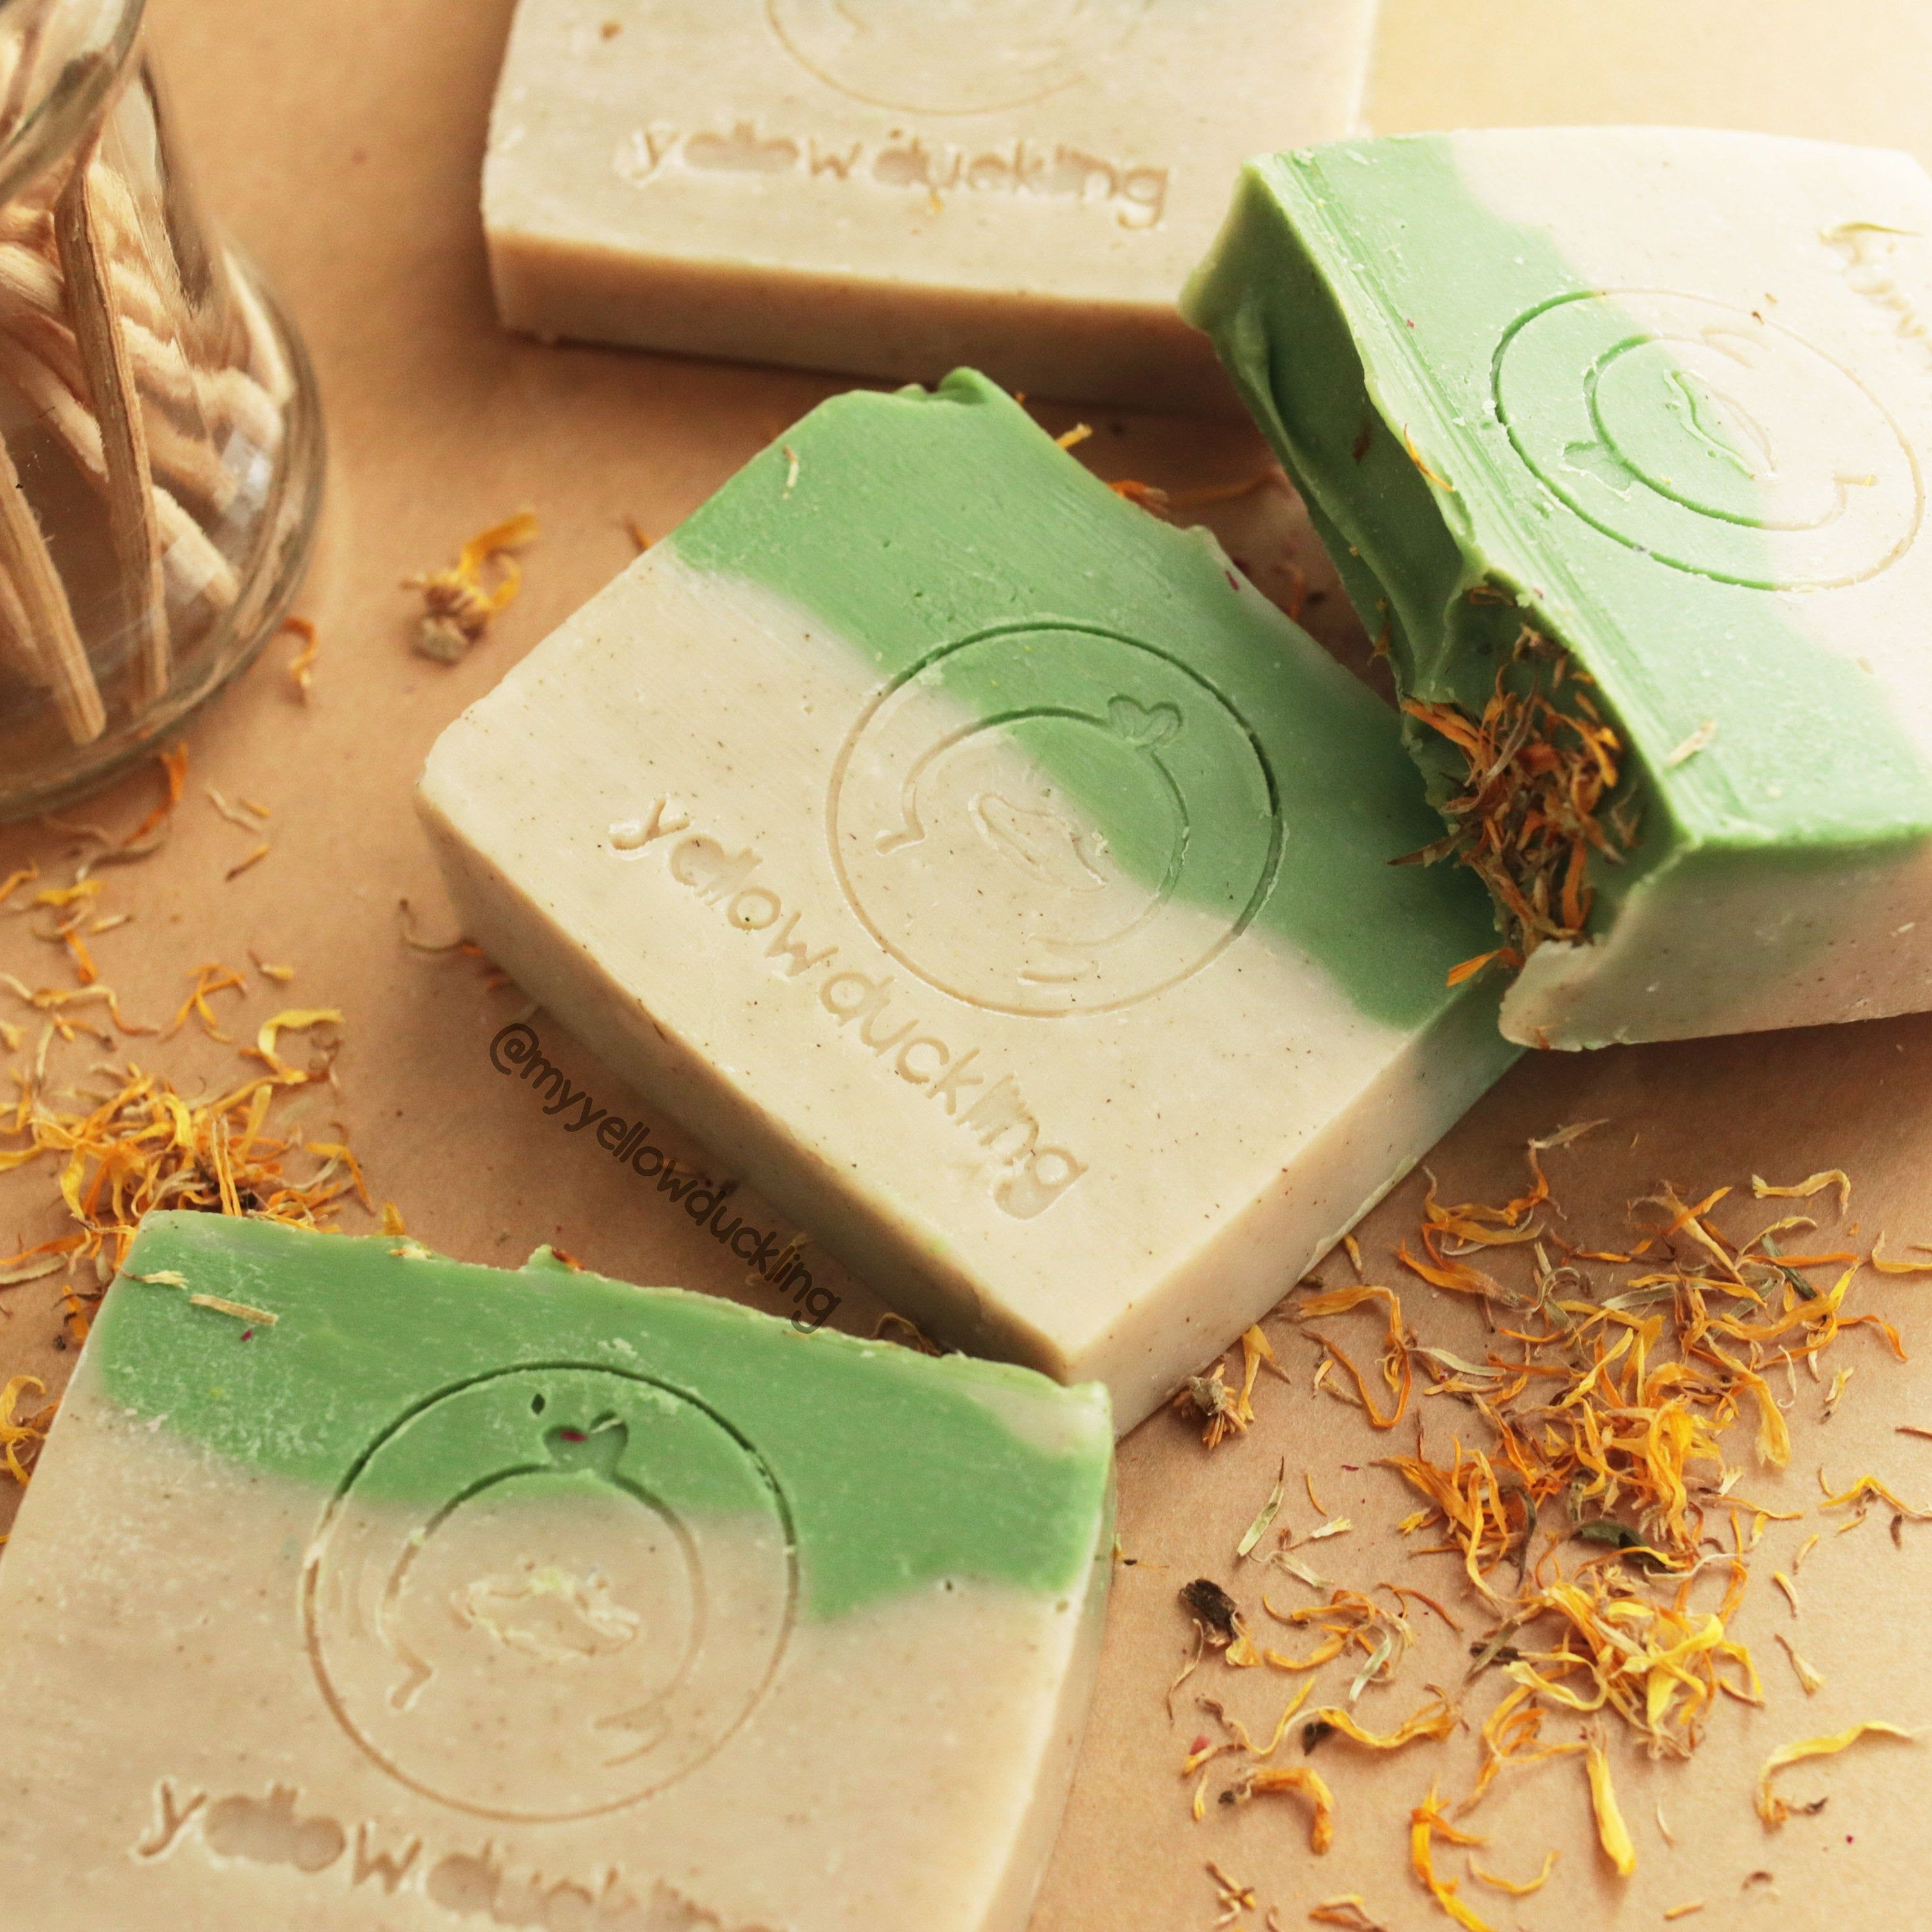 Handmade Natural Soap in Mojito Mint scent with fragrance